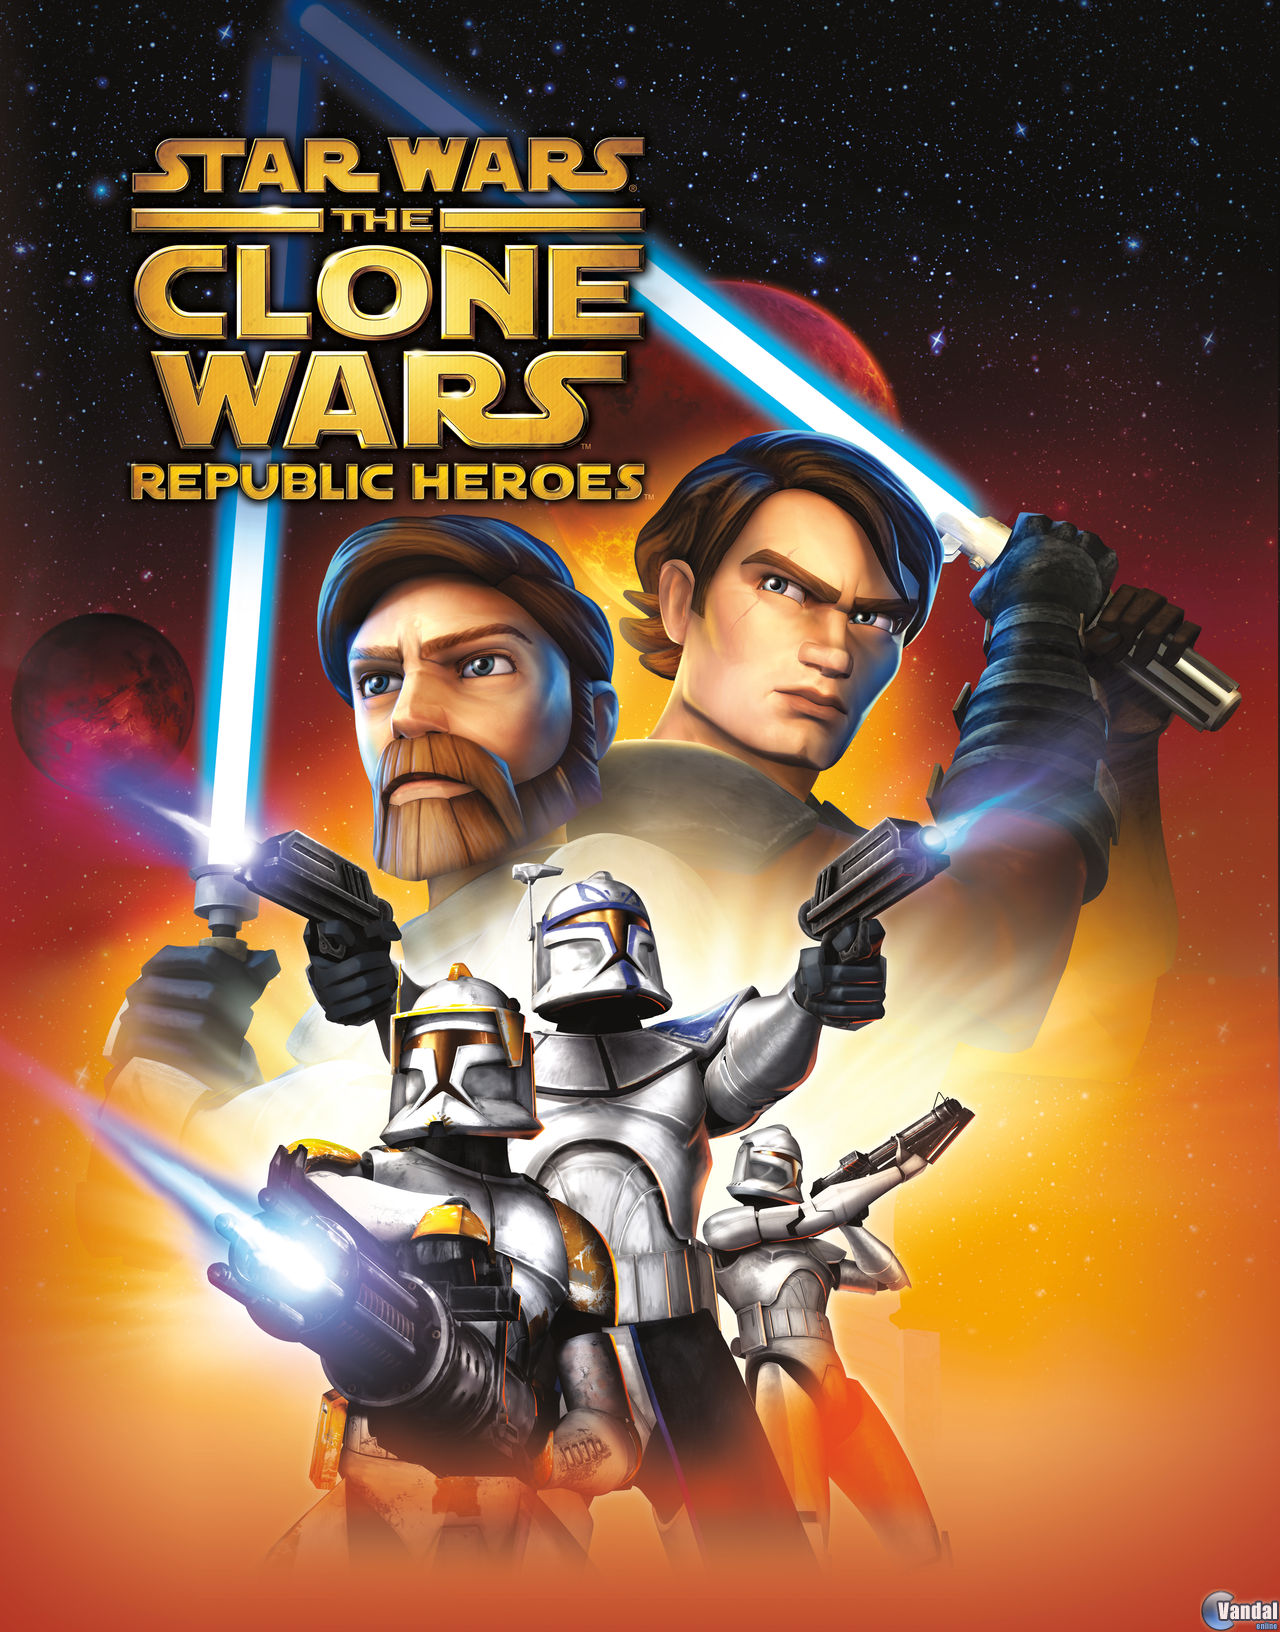 Star Wars The Clone Wars Republic Heroes [2009][PC][Full] 1 Link